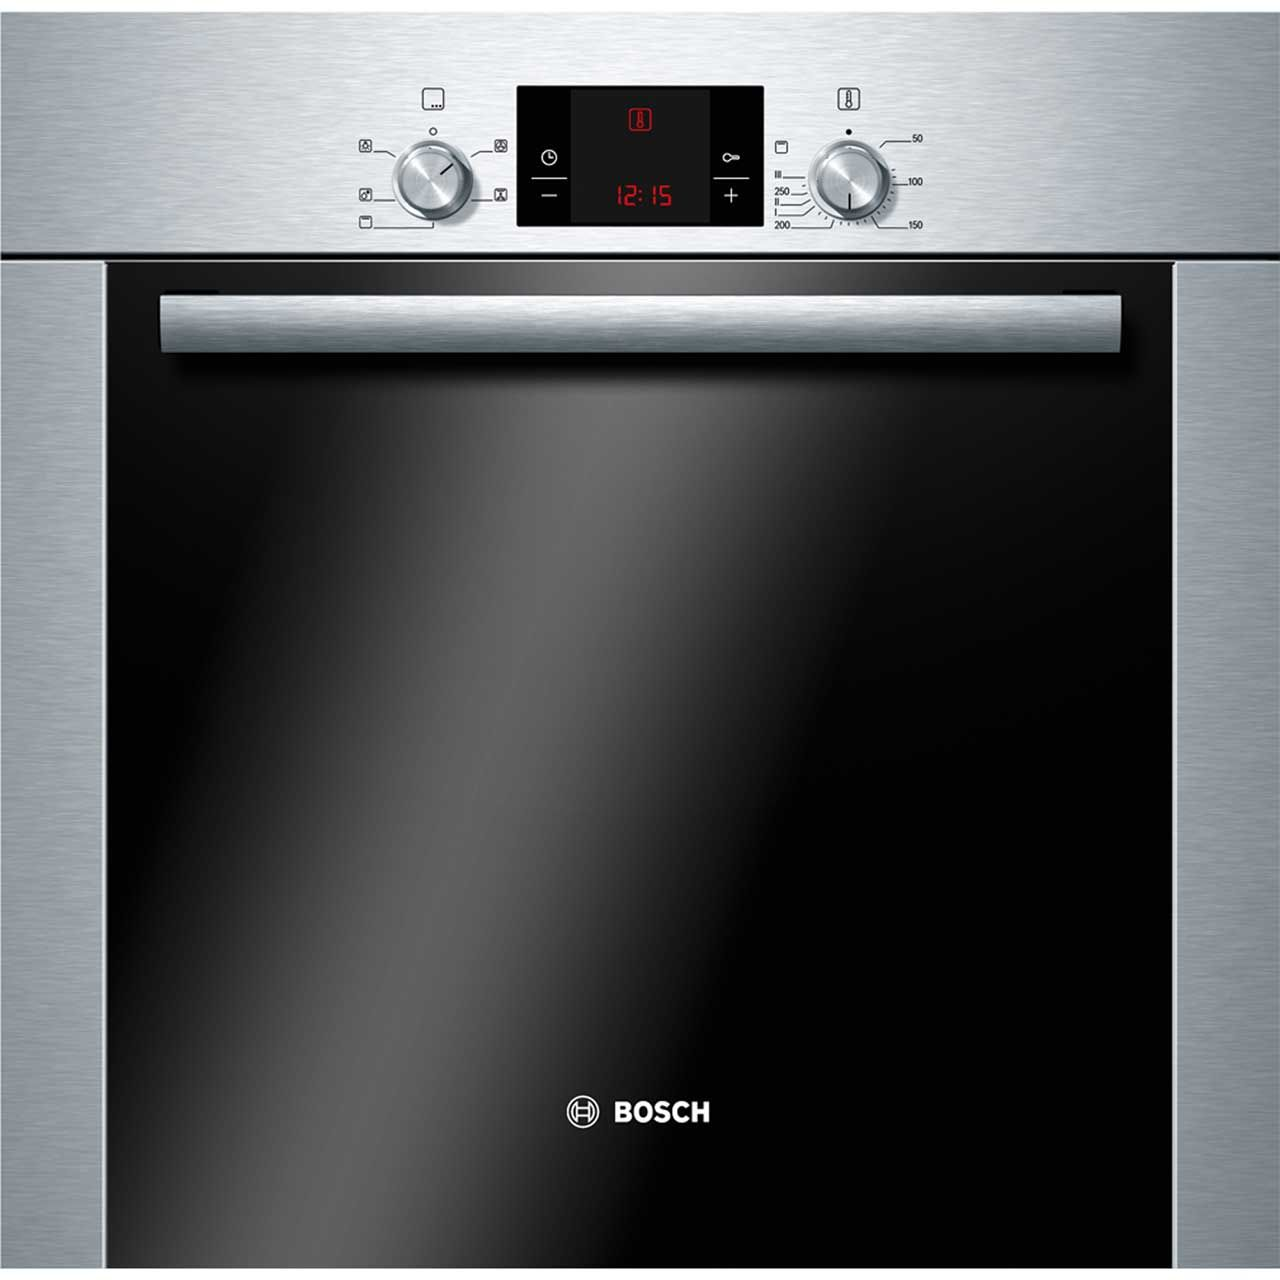 Uncategorized Bosch Integrated Kitchen Appliances 349 or a350 bosch serie 6 hba13b253b built in electric single a349 oven